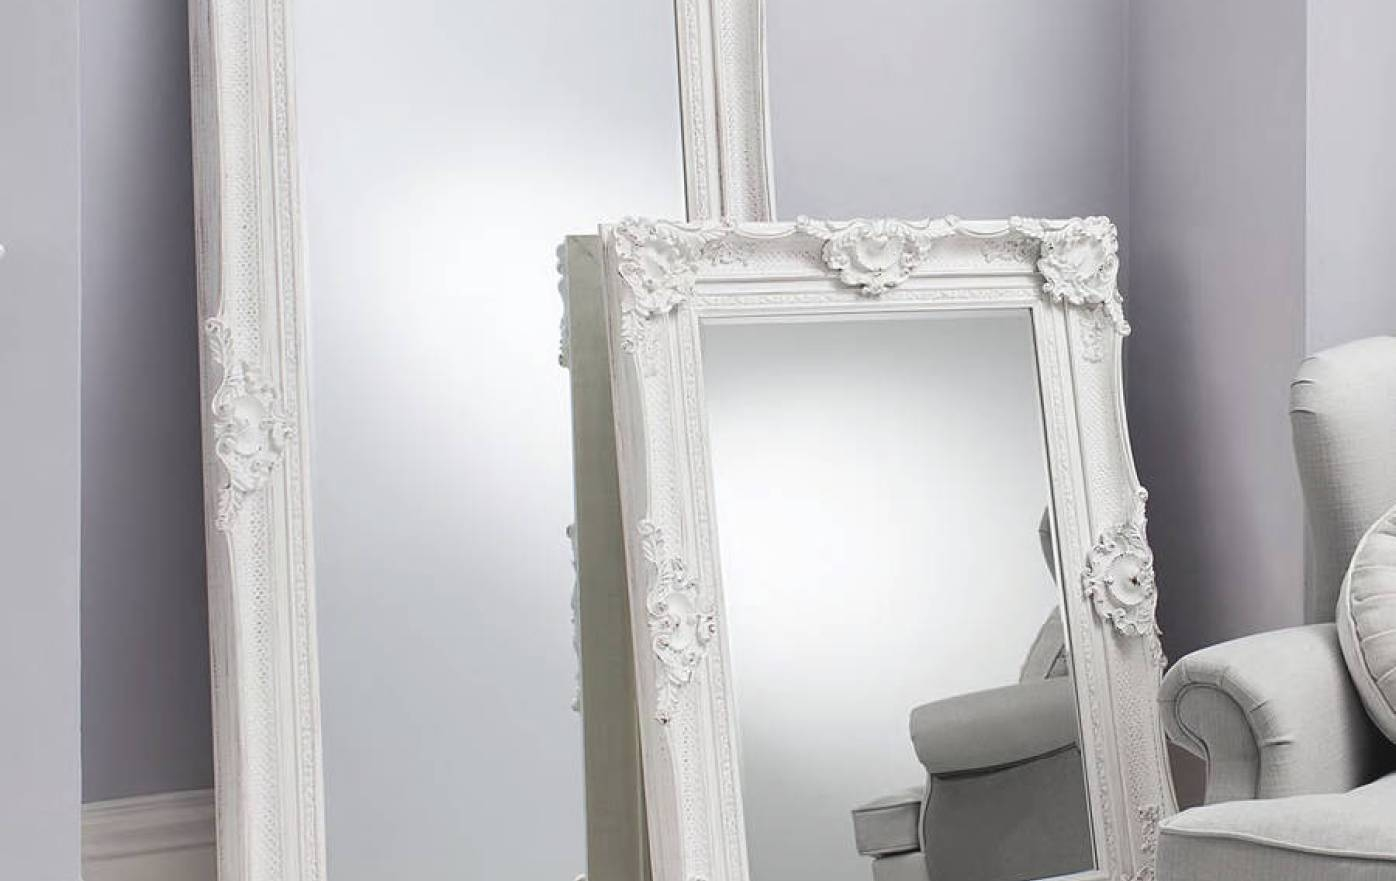 Mirror Large Framed Mirrors Whole 82 Awesome Exterior With Throughout Venetian Floor Image